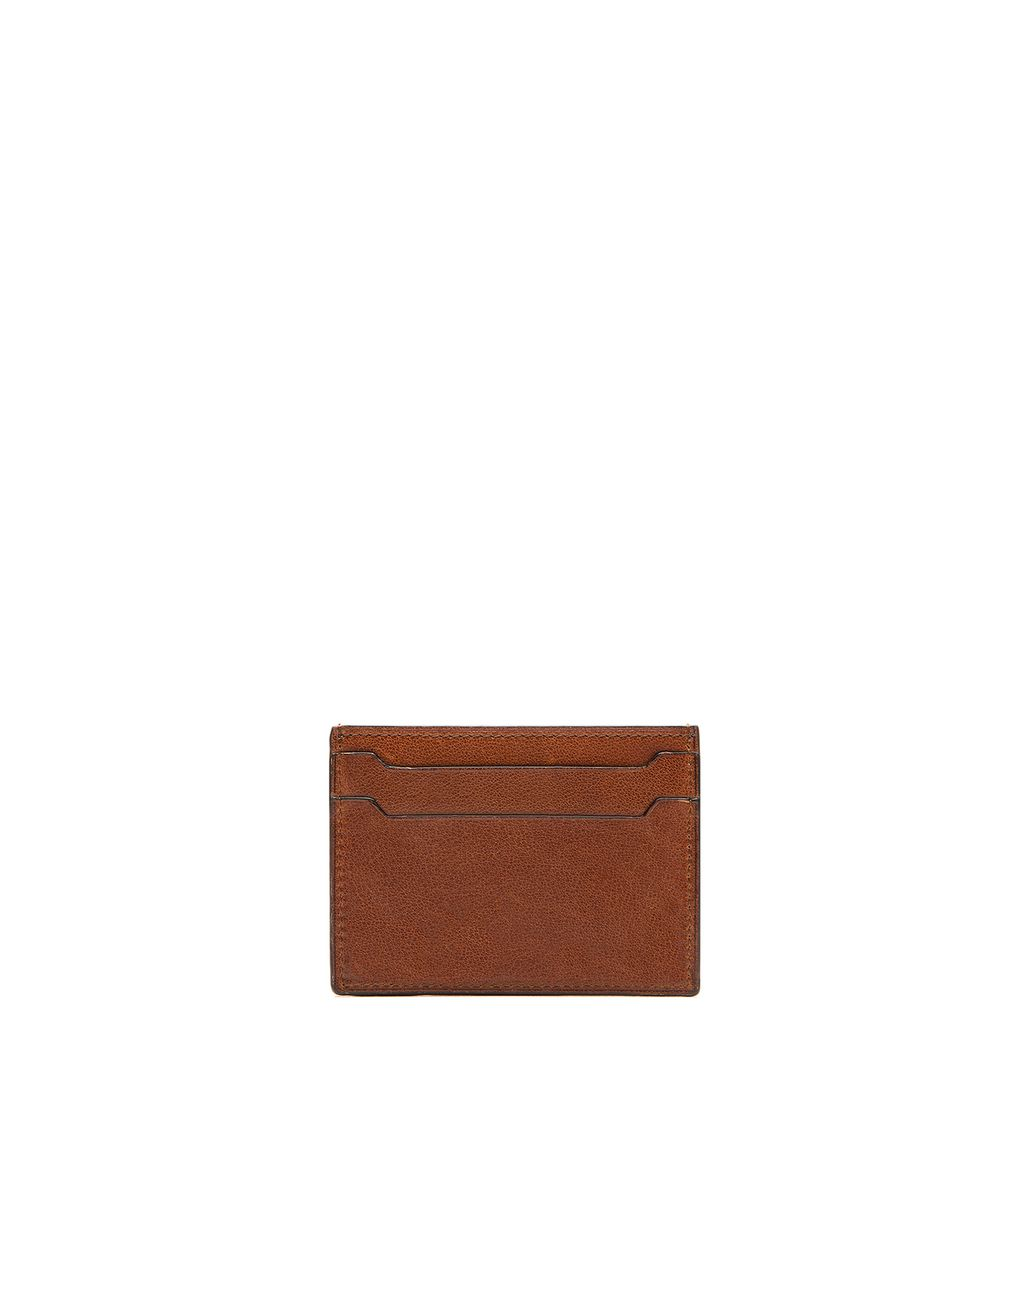 BRIONI Porte-cartes de crédit marron Article de Maroquinerie [*** pickupInStoreShippingNotGuaranteed_info ***] r